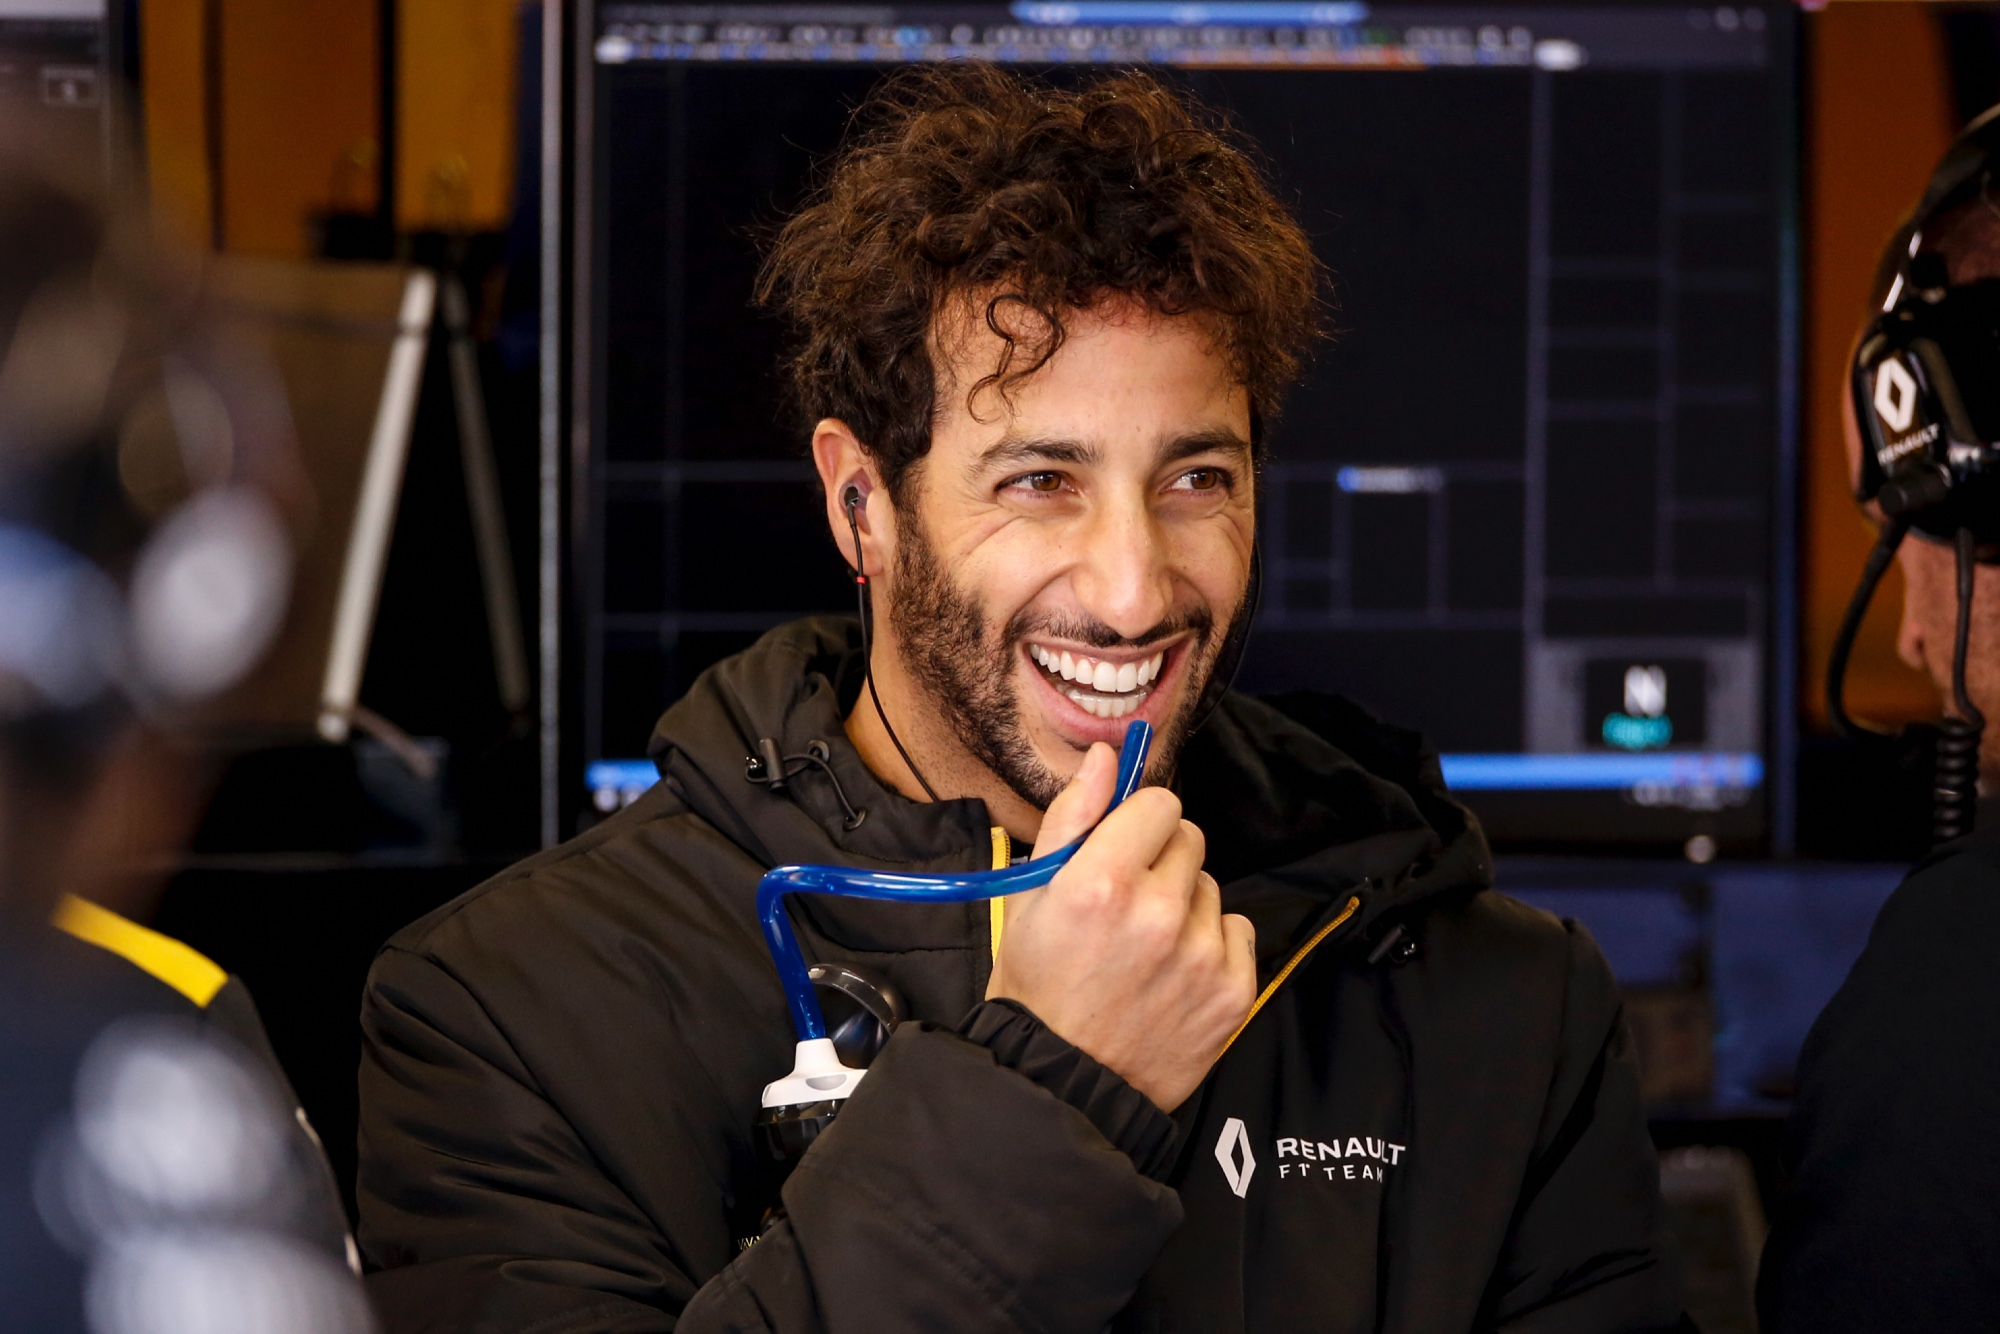 Daniel Ricciardo to join McLaren for 2021 F1 season